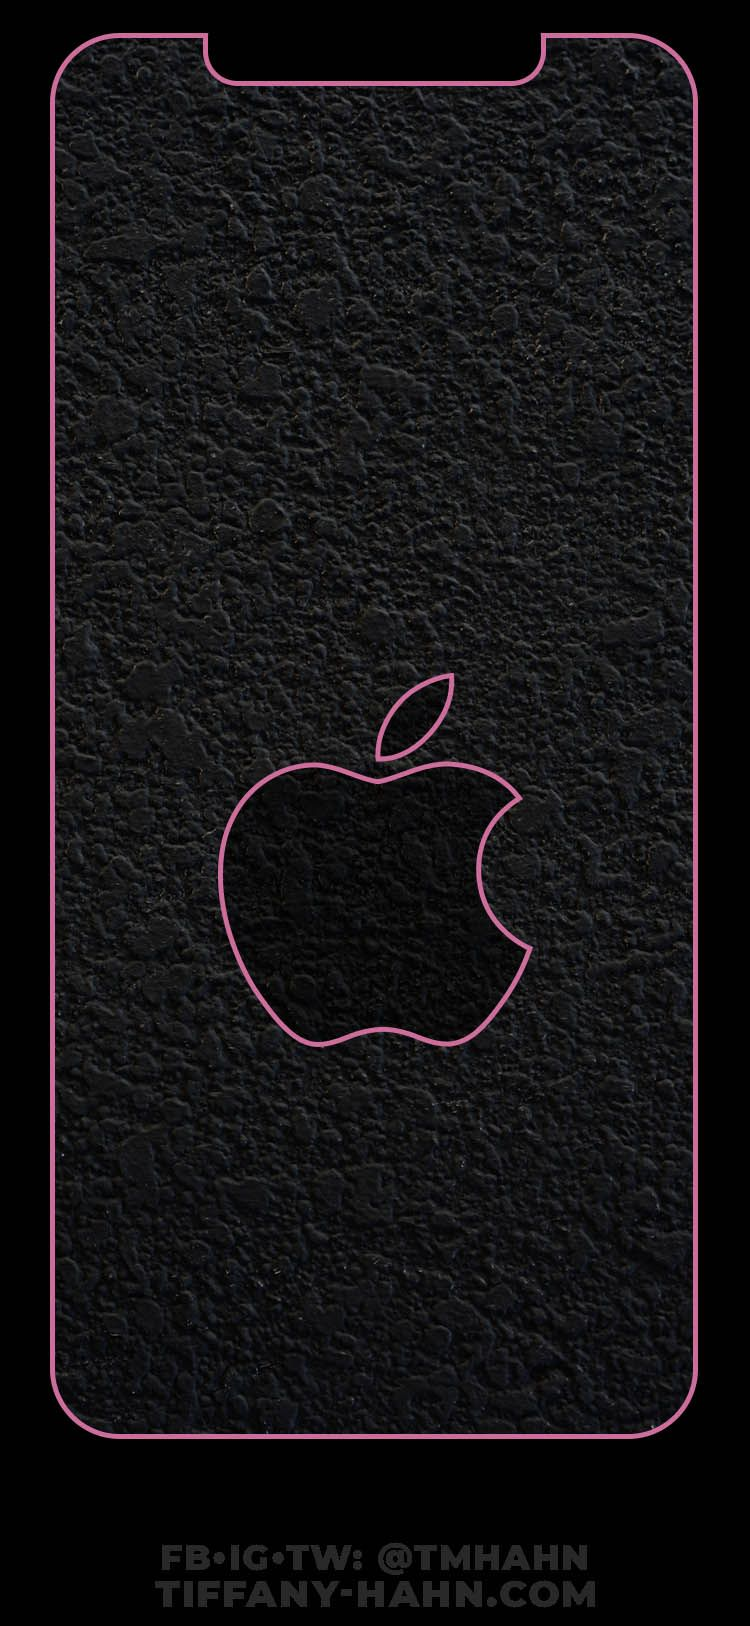 This Wallpaper Will Perfectly Fit The Iphone Xs Max The Outline Is Pink The Inside Is A Dark Gray Pave Apple Wallpaper Iphone Apple Wallpaper Fitness Tattoos